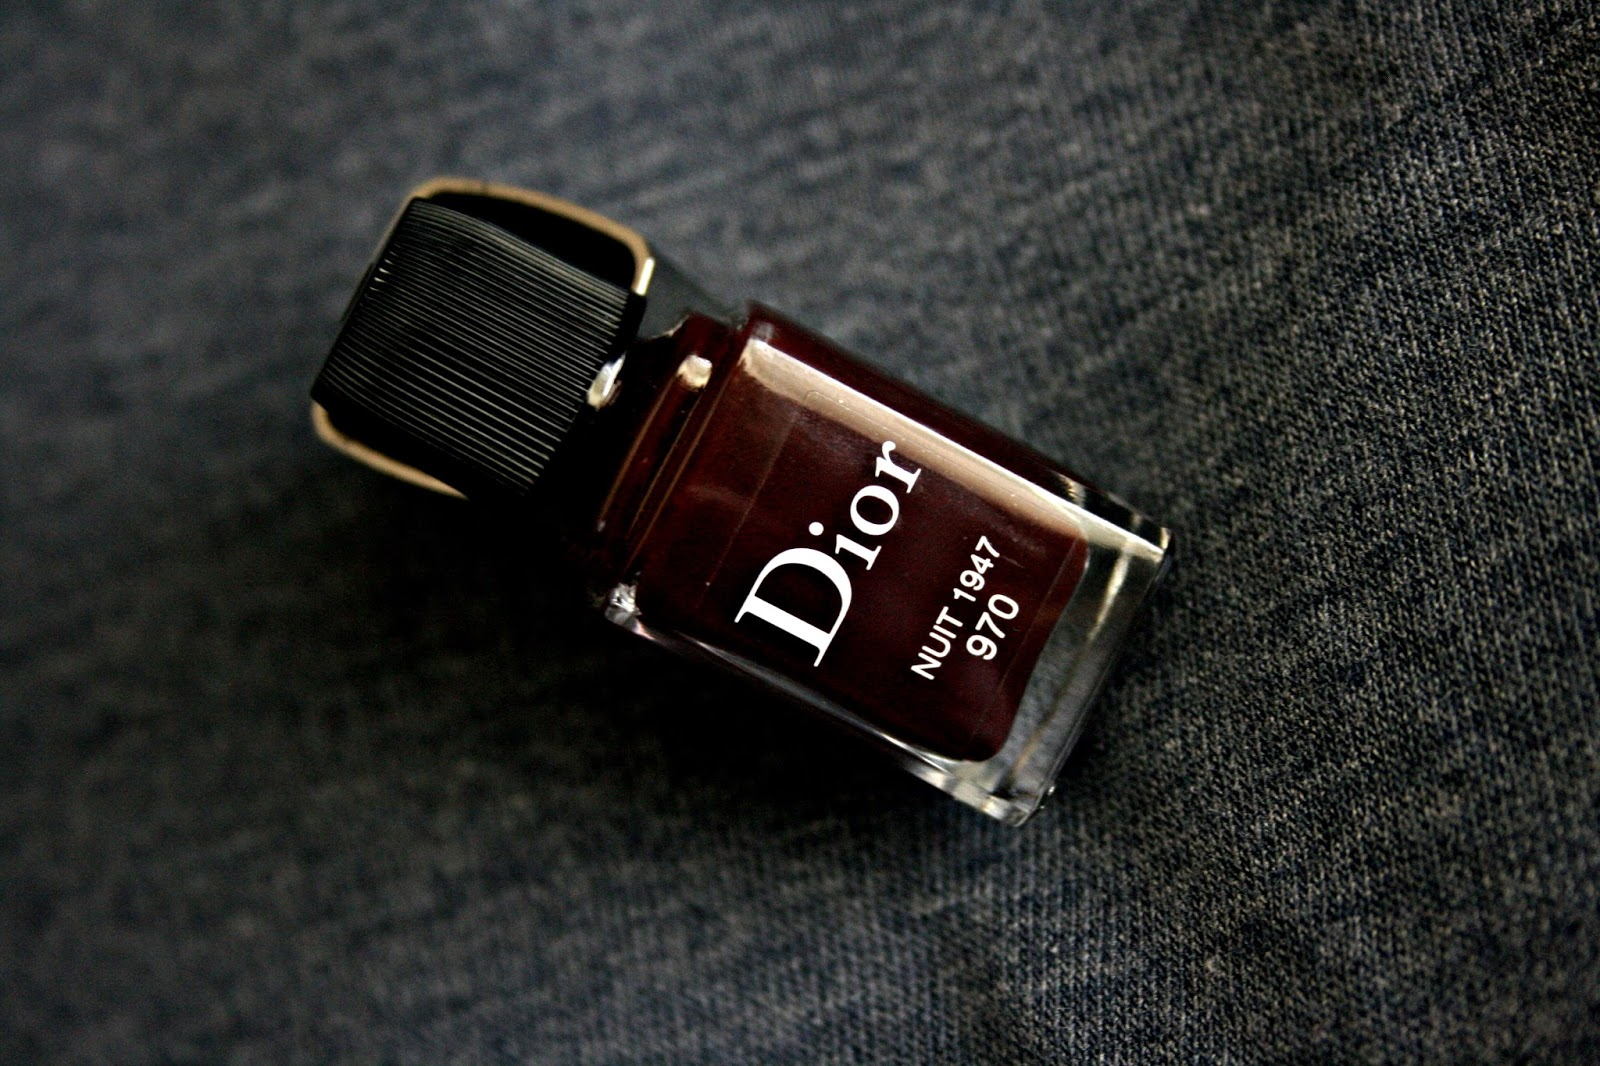 Dior Vernis Gel Shine and Long Wear Nail Lacquer in Nuit 1947 970 Review, Photos, Swatches